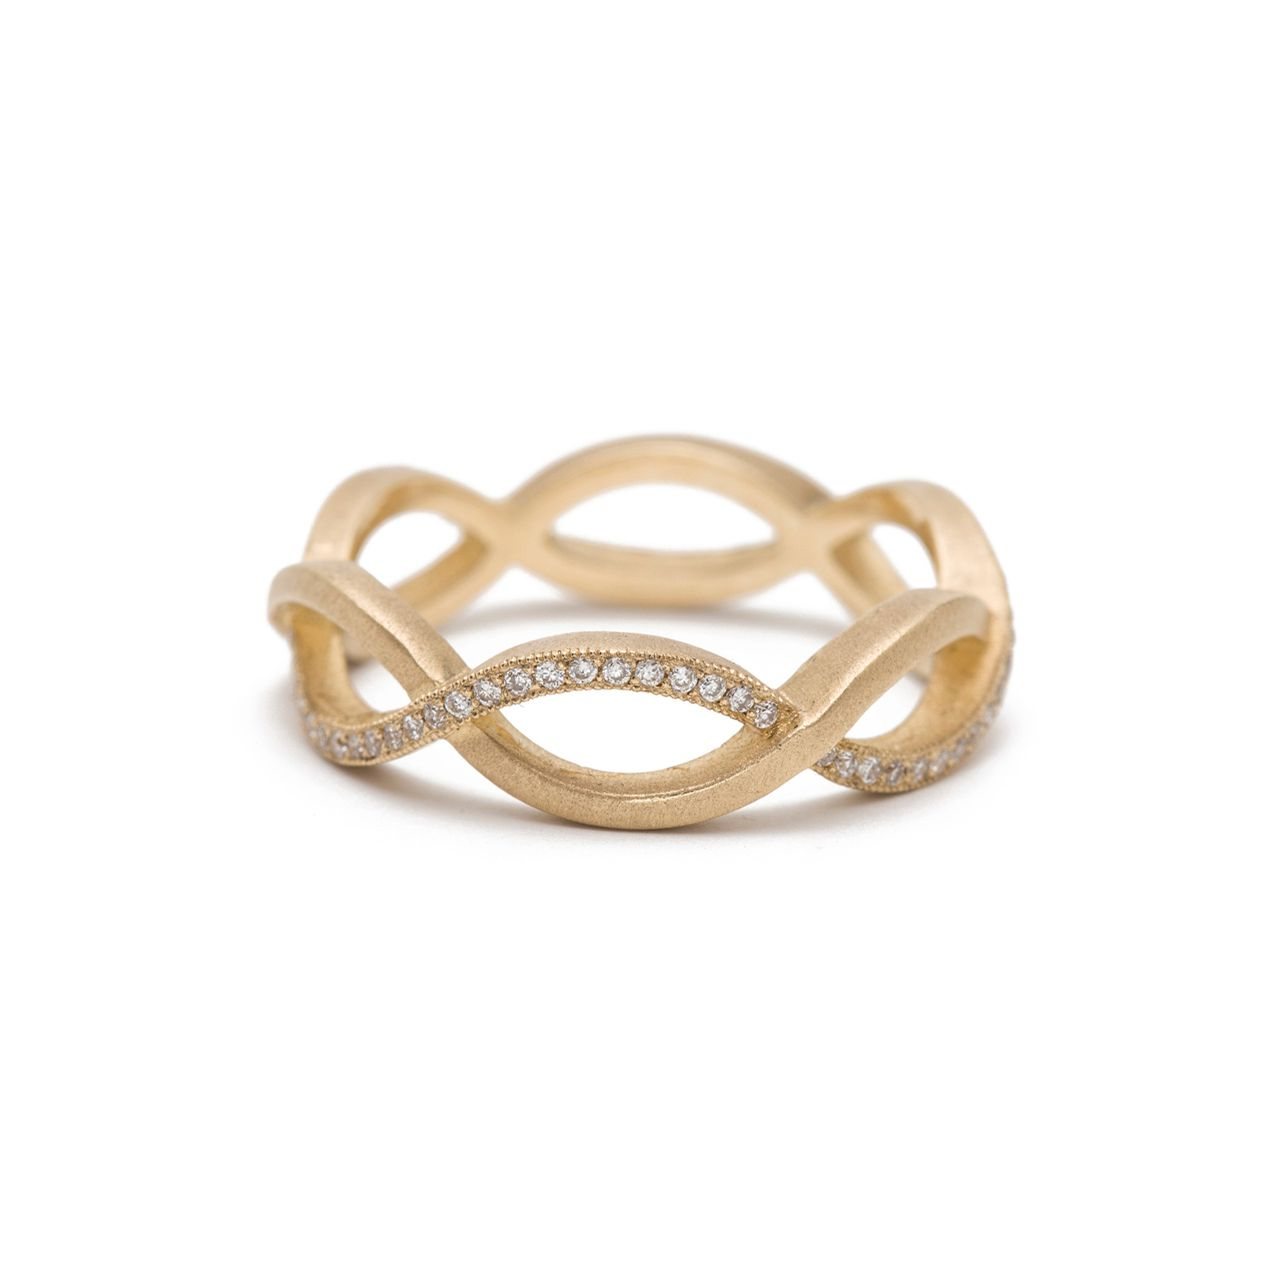 Sofia Kaman Gold Infinity Ring With Diamond Accents